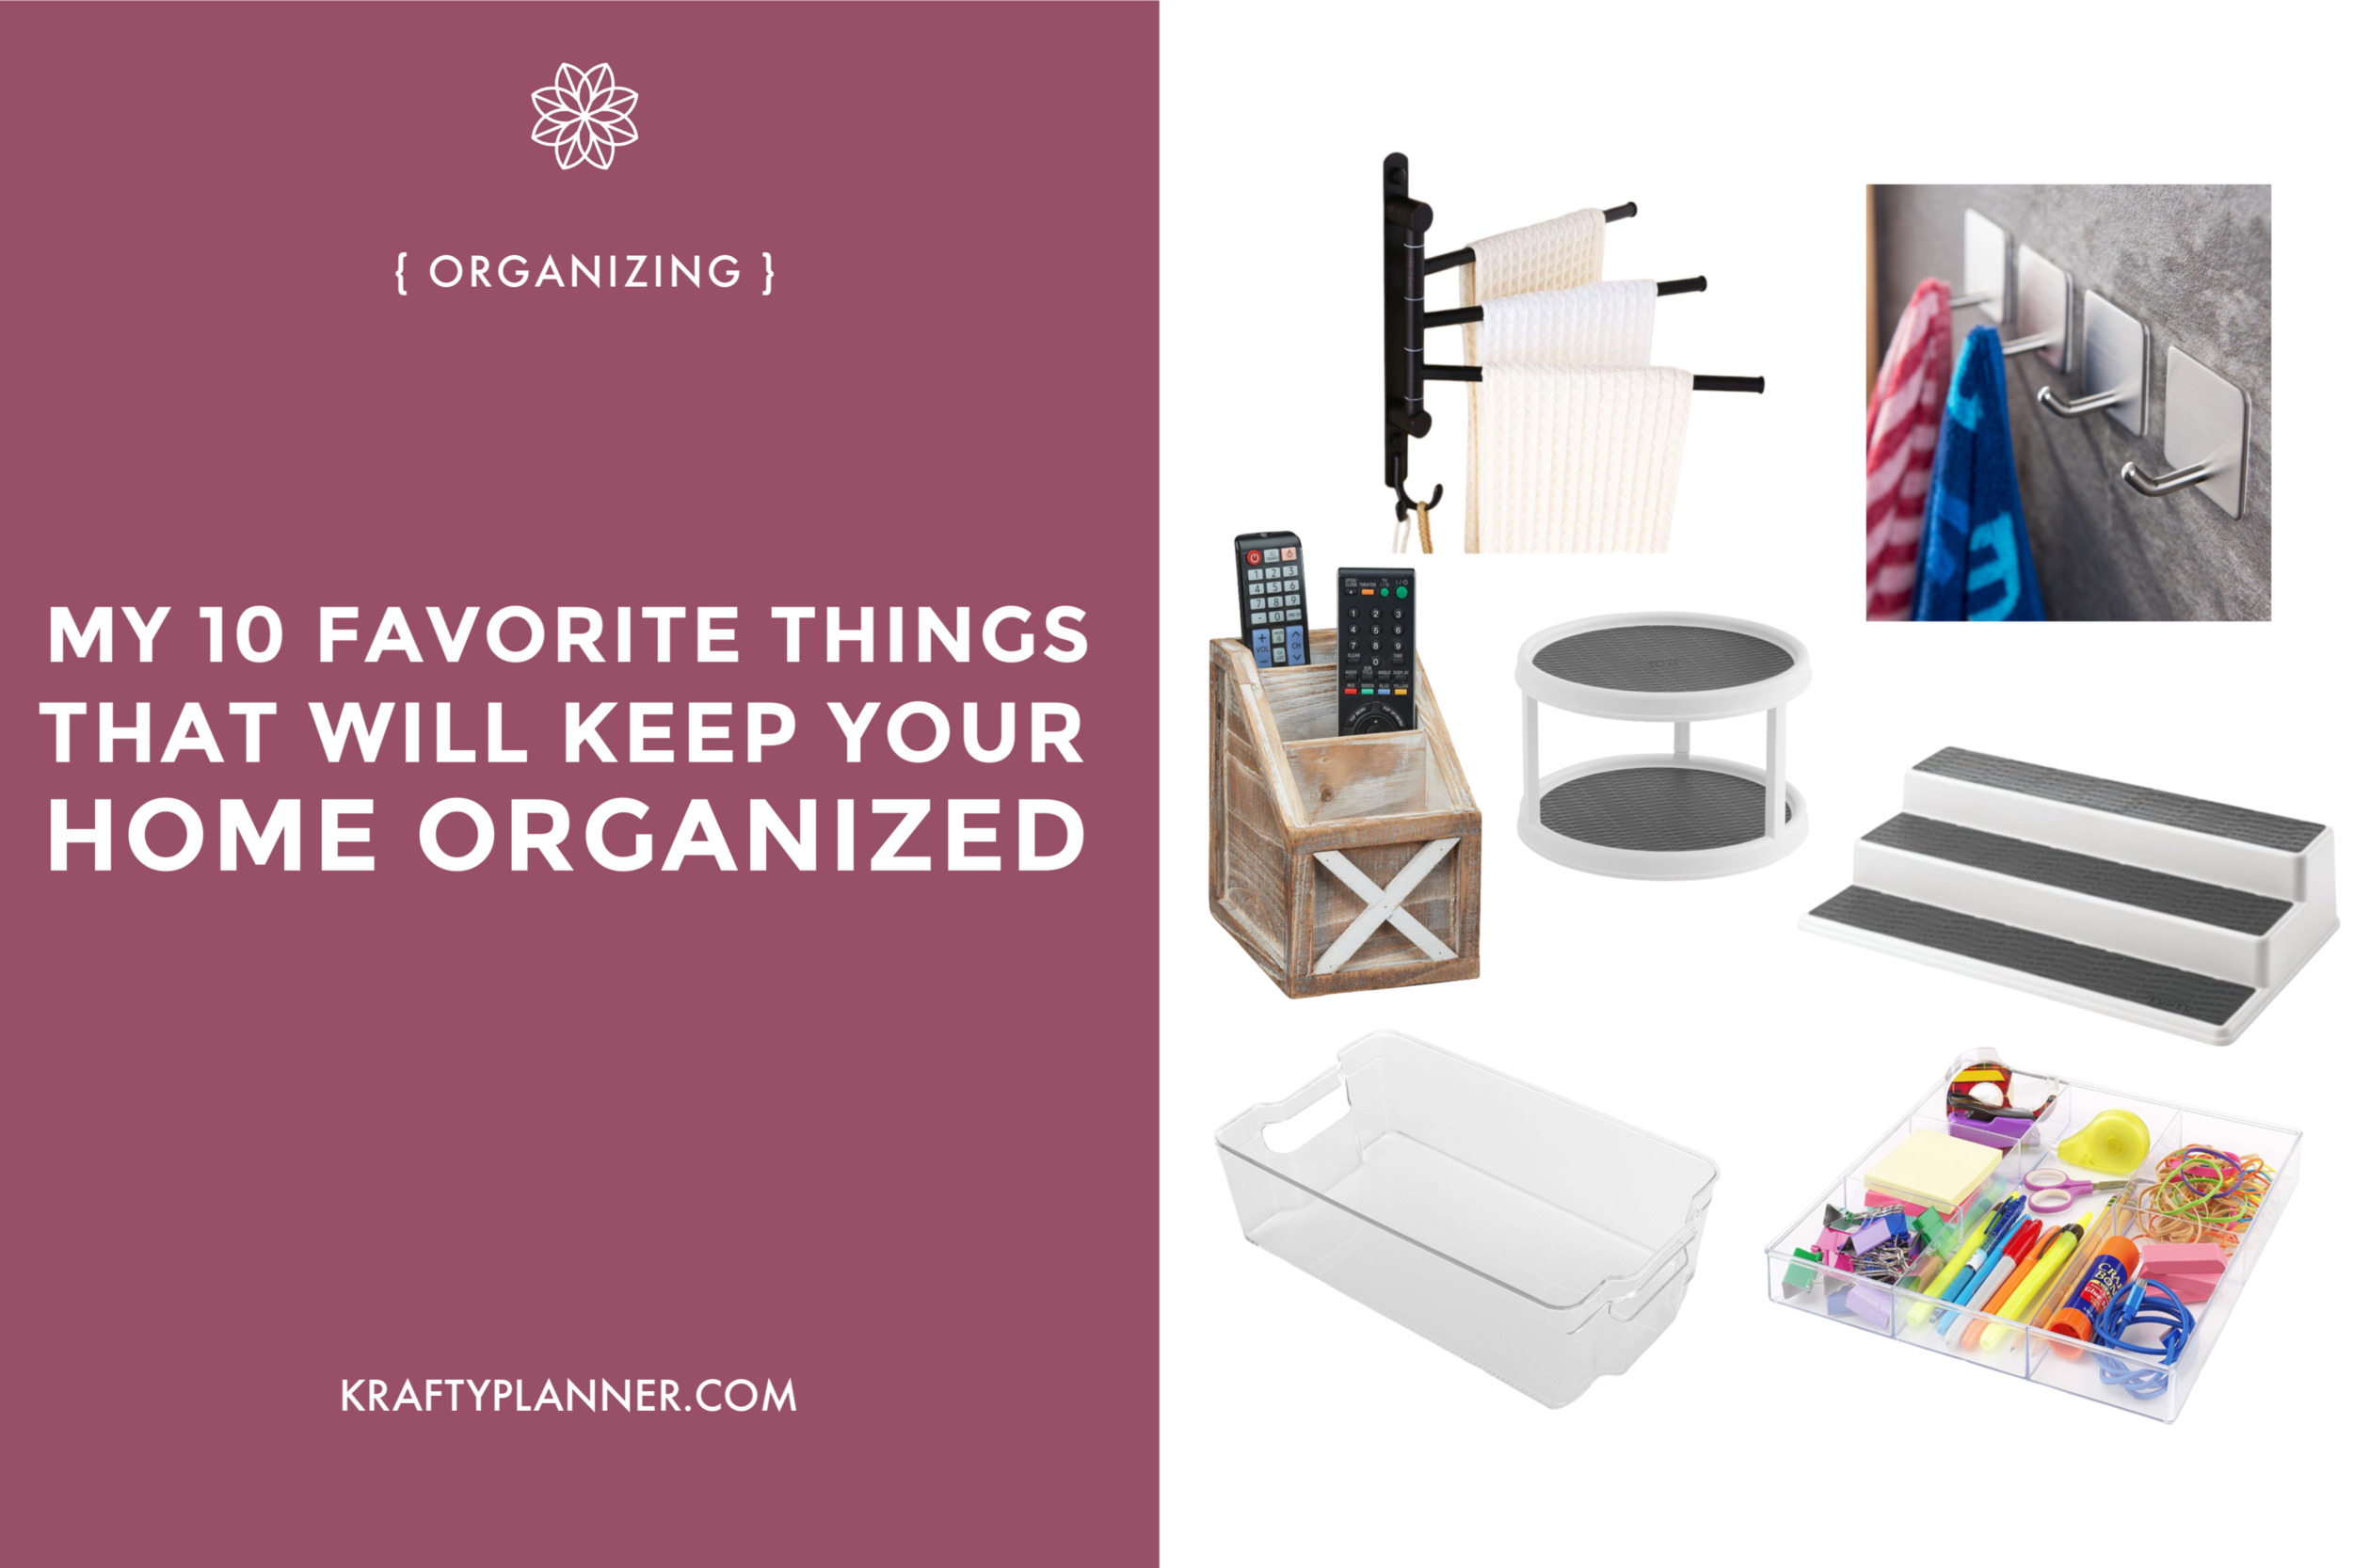 my 10 favorite things that will Keep Your Home Organized Main Image (1).png